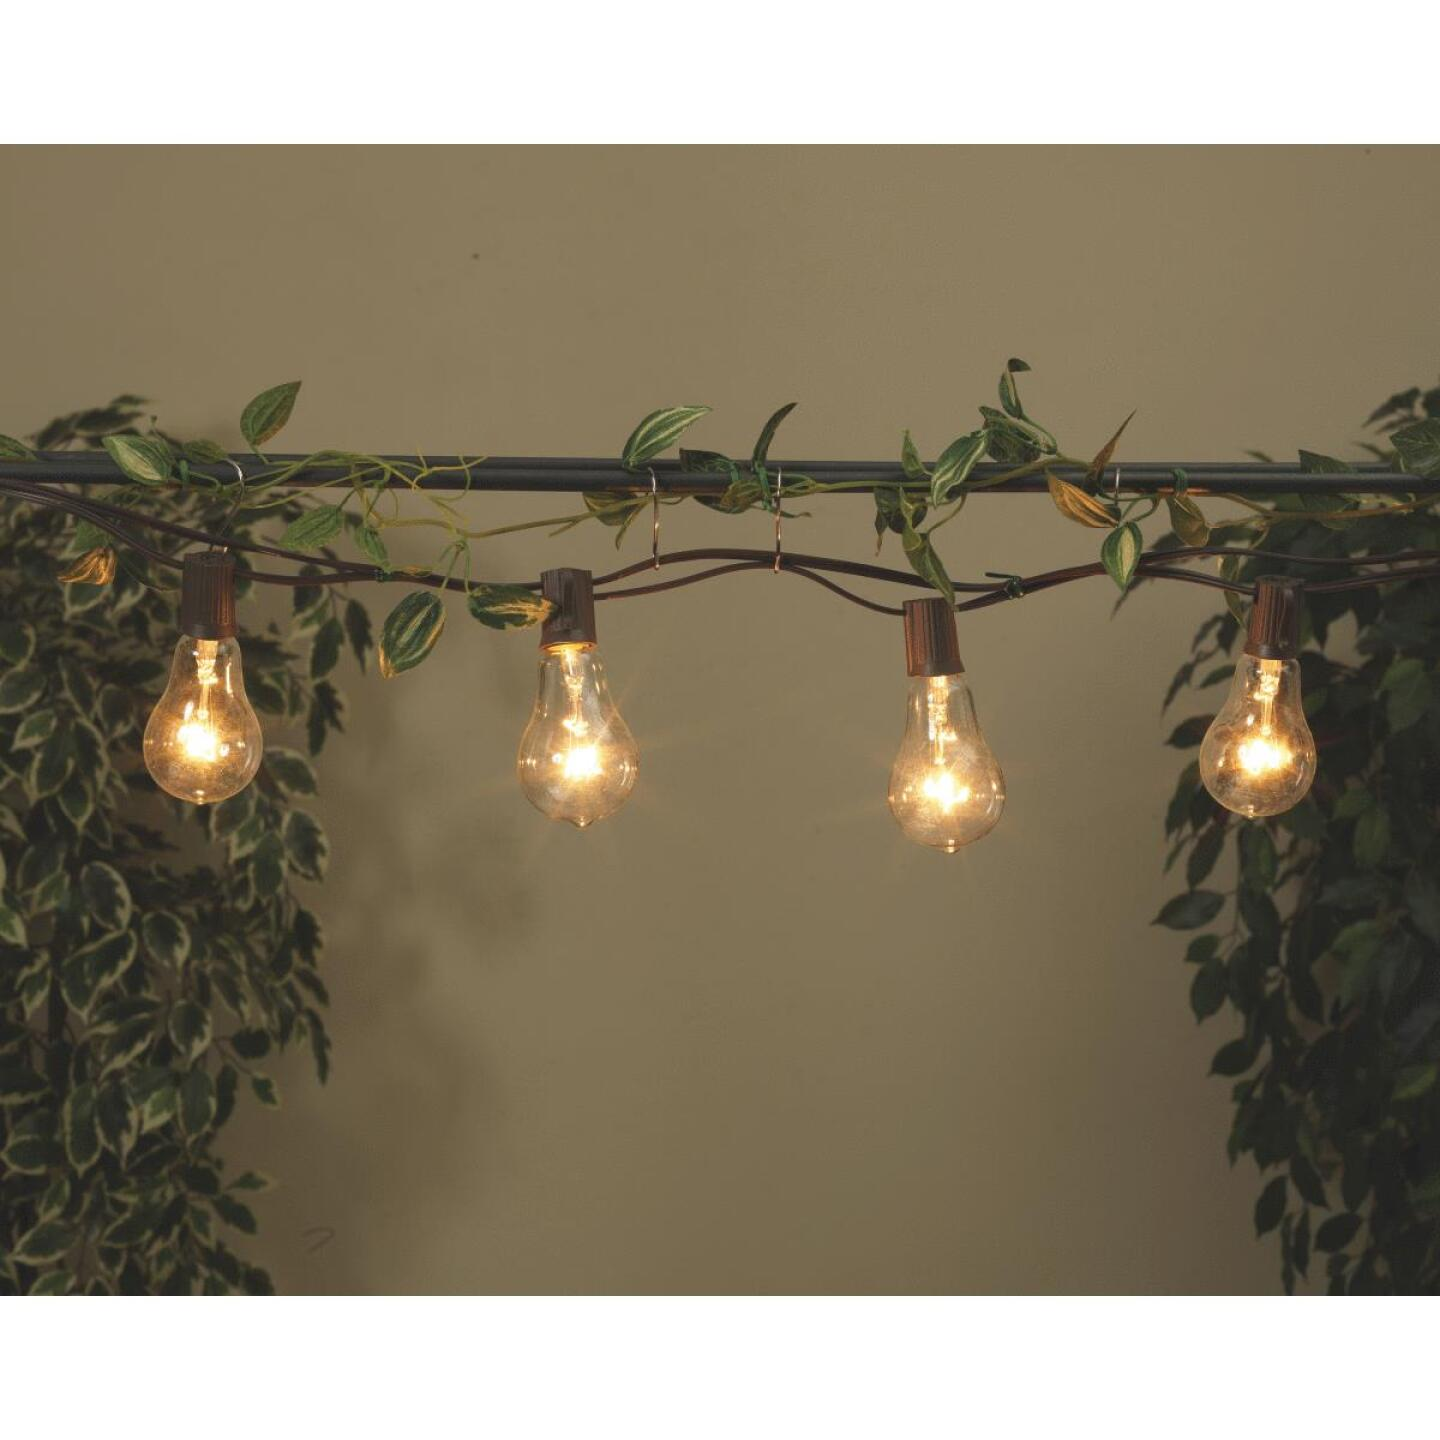 Gerson 10 Ft. 10-Light Clear Bulb String Lights Image 2